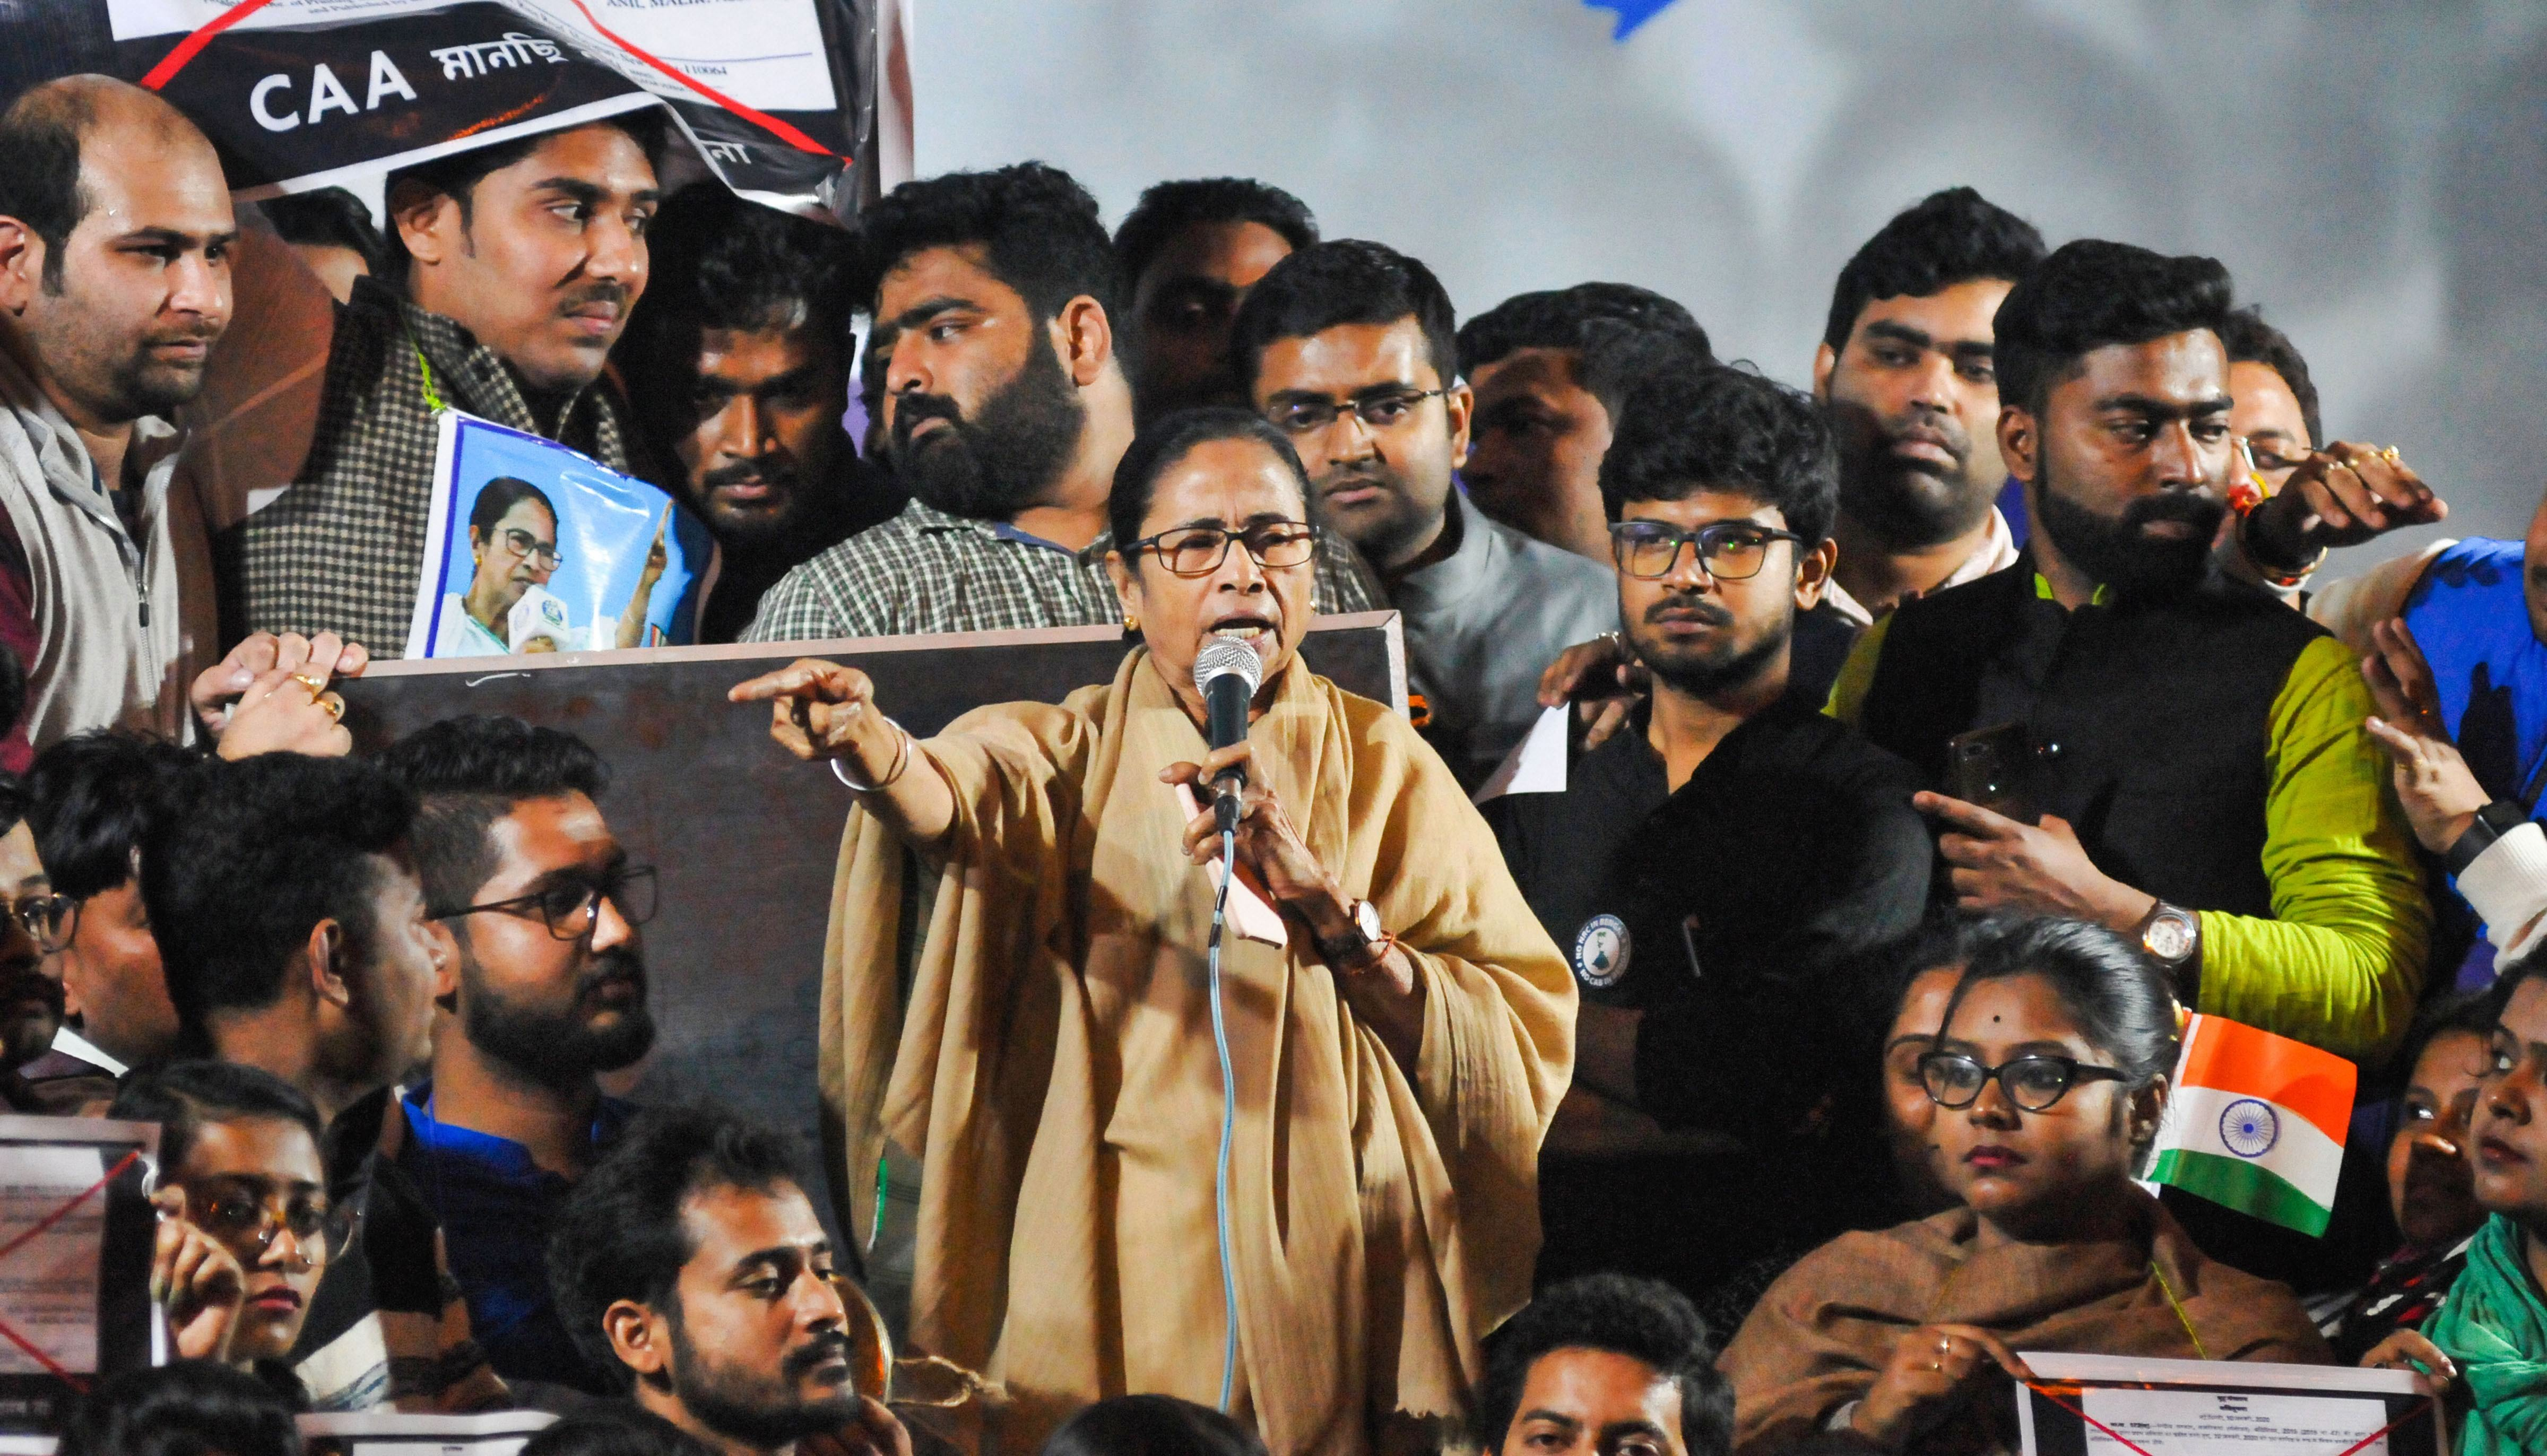 West Bengal chief minister Mamata Banerjee during a protest against CAA, NRC and NPR, in Kolkata, Saturday, January 11, 2020.